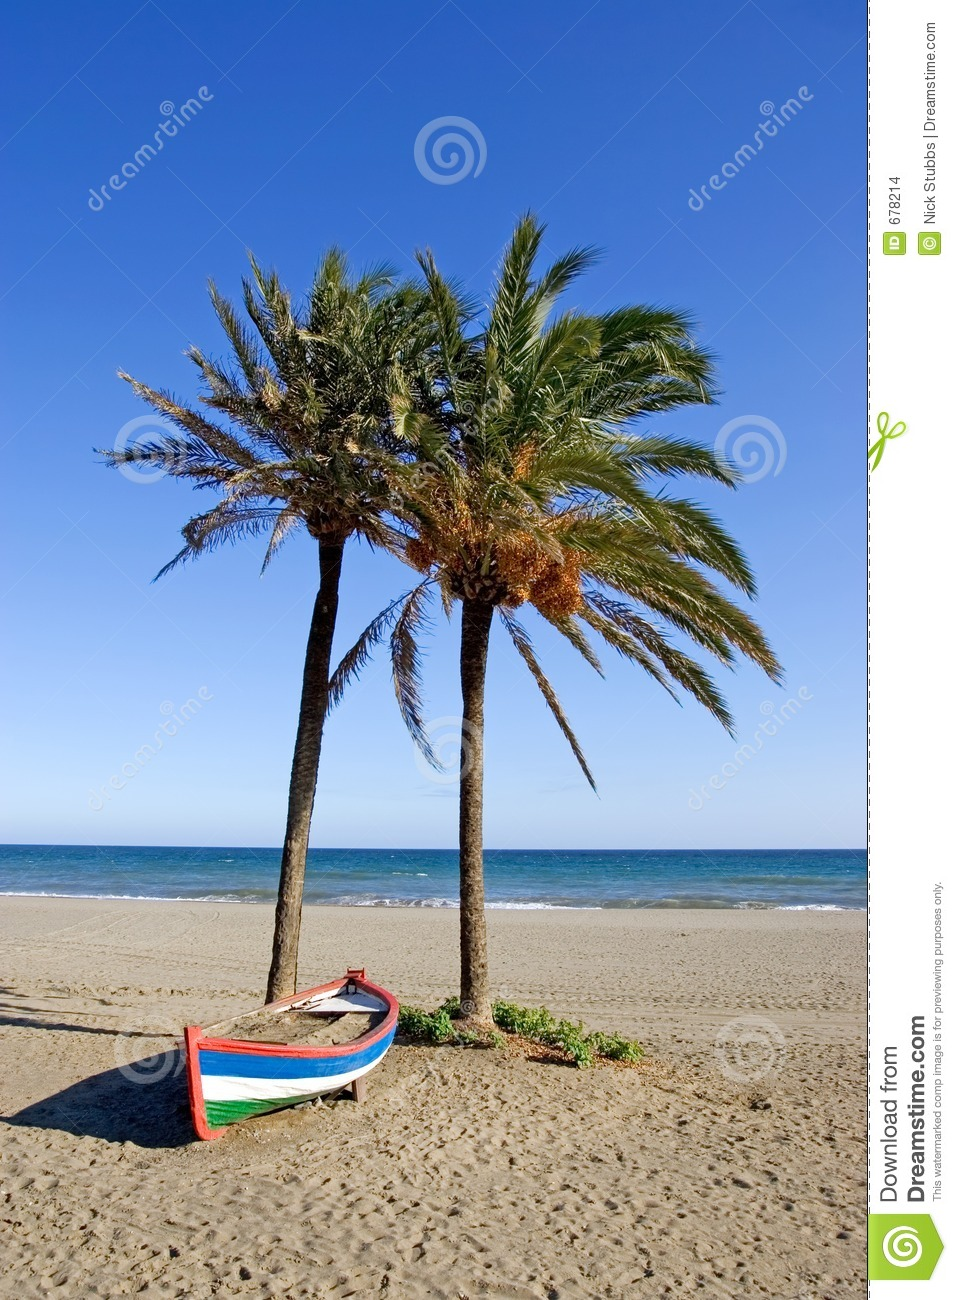 palm trees boat-#49